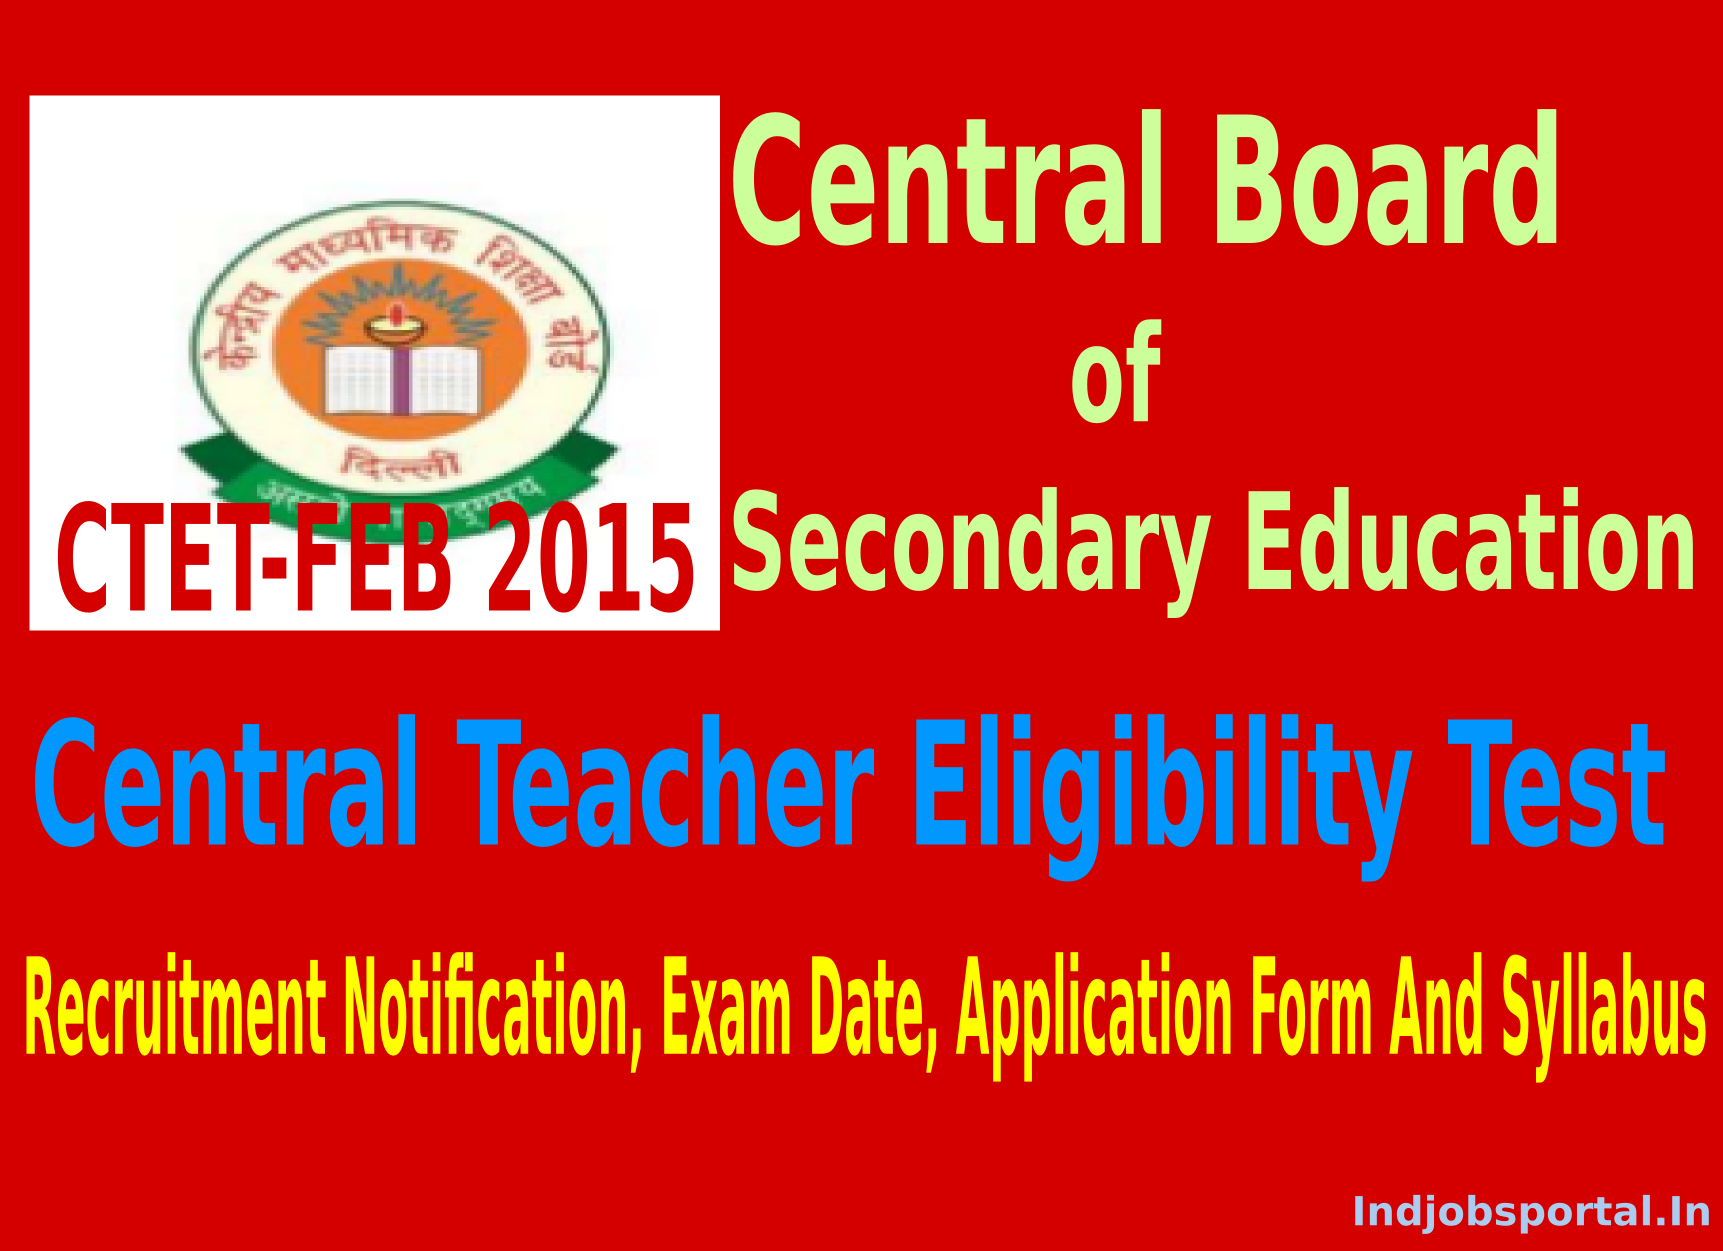 CTET 2015 Recruitment Notification, Exam Date, Application Form And Syllabus